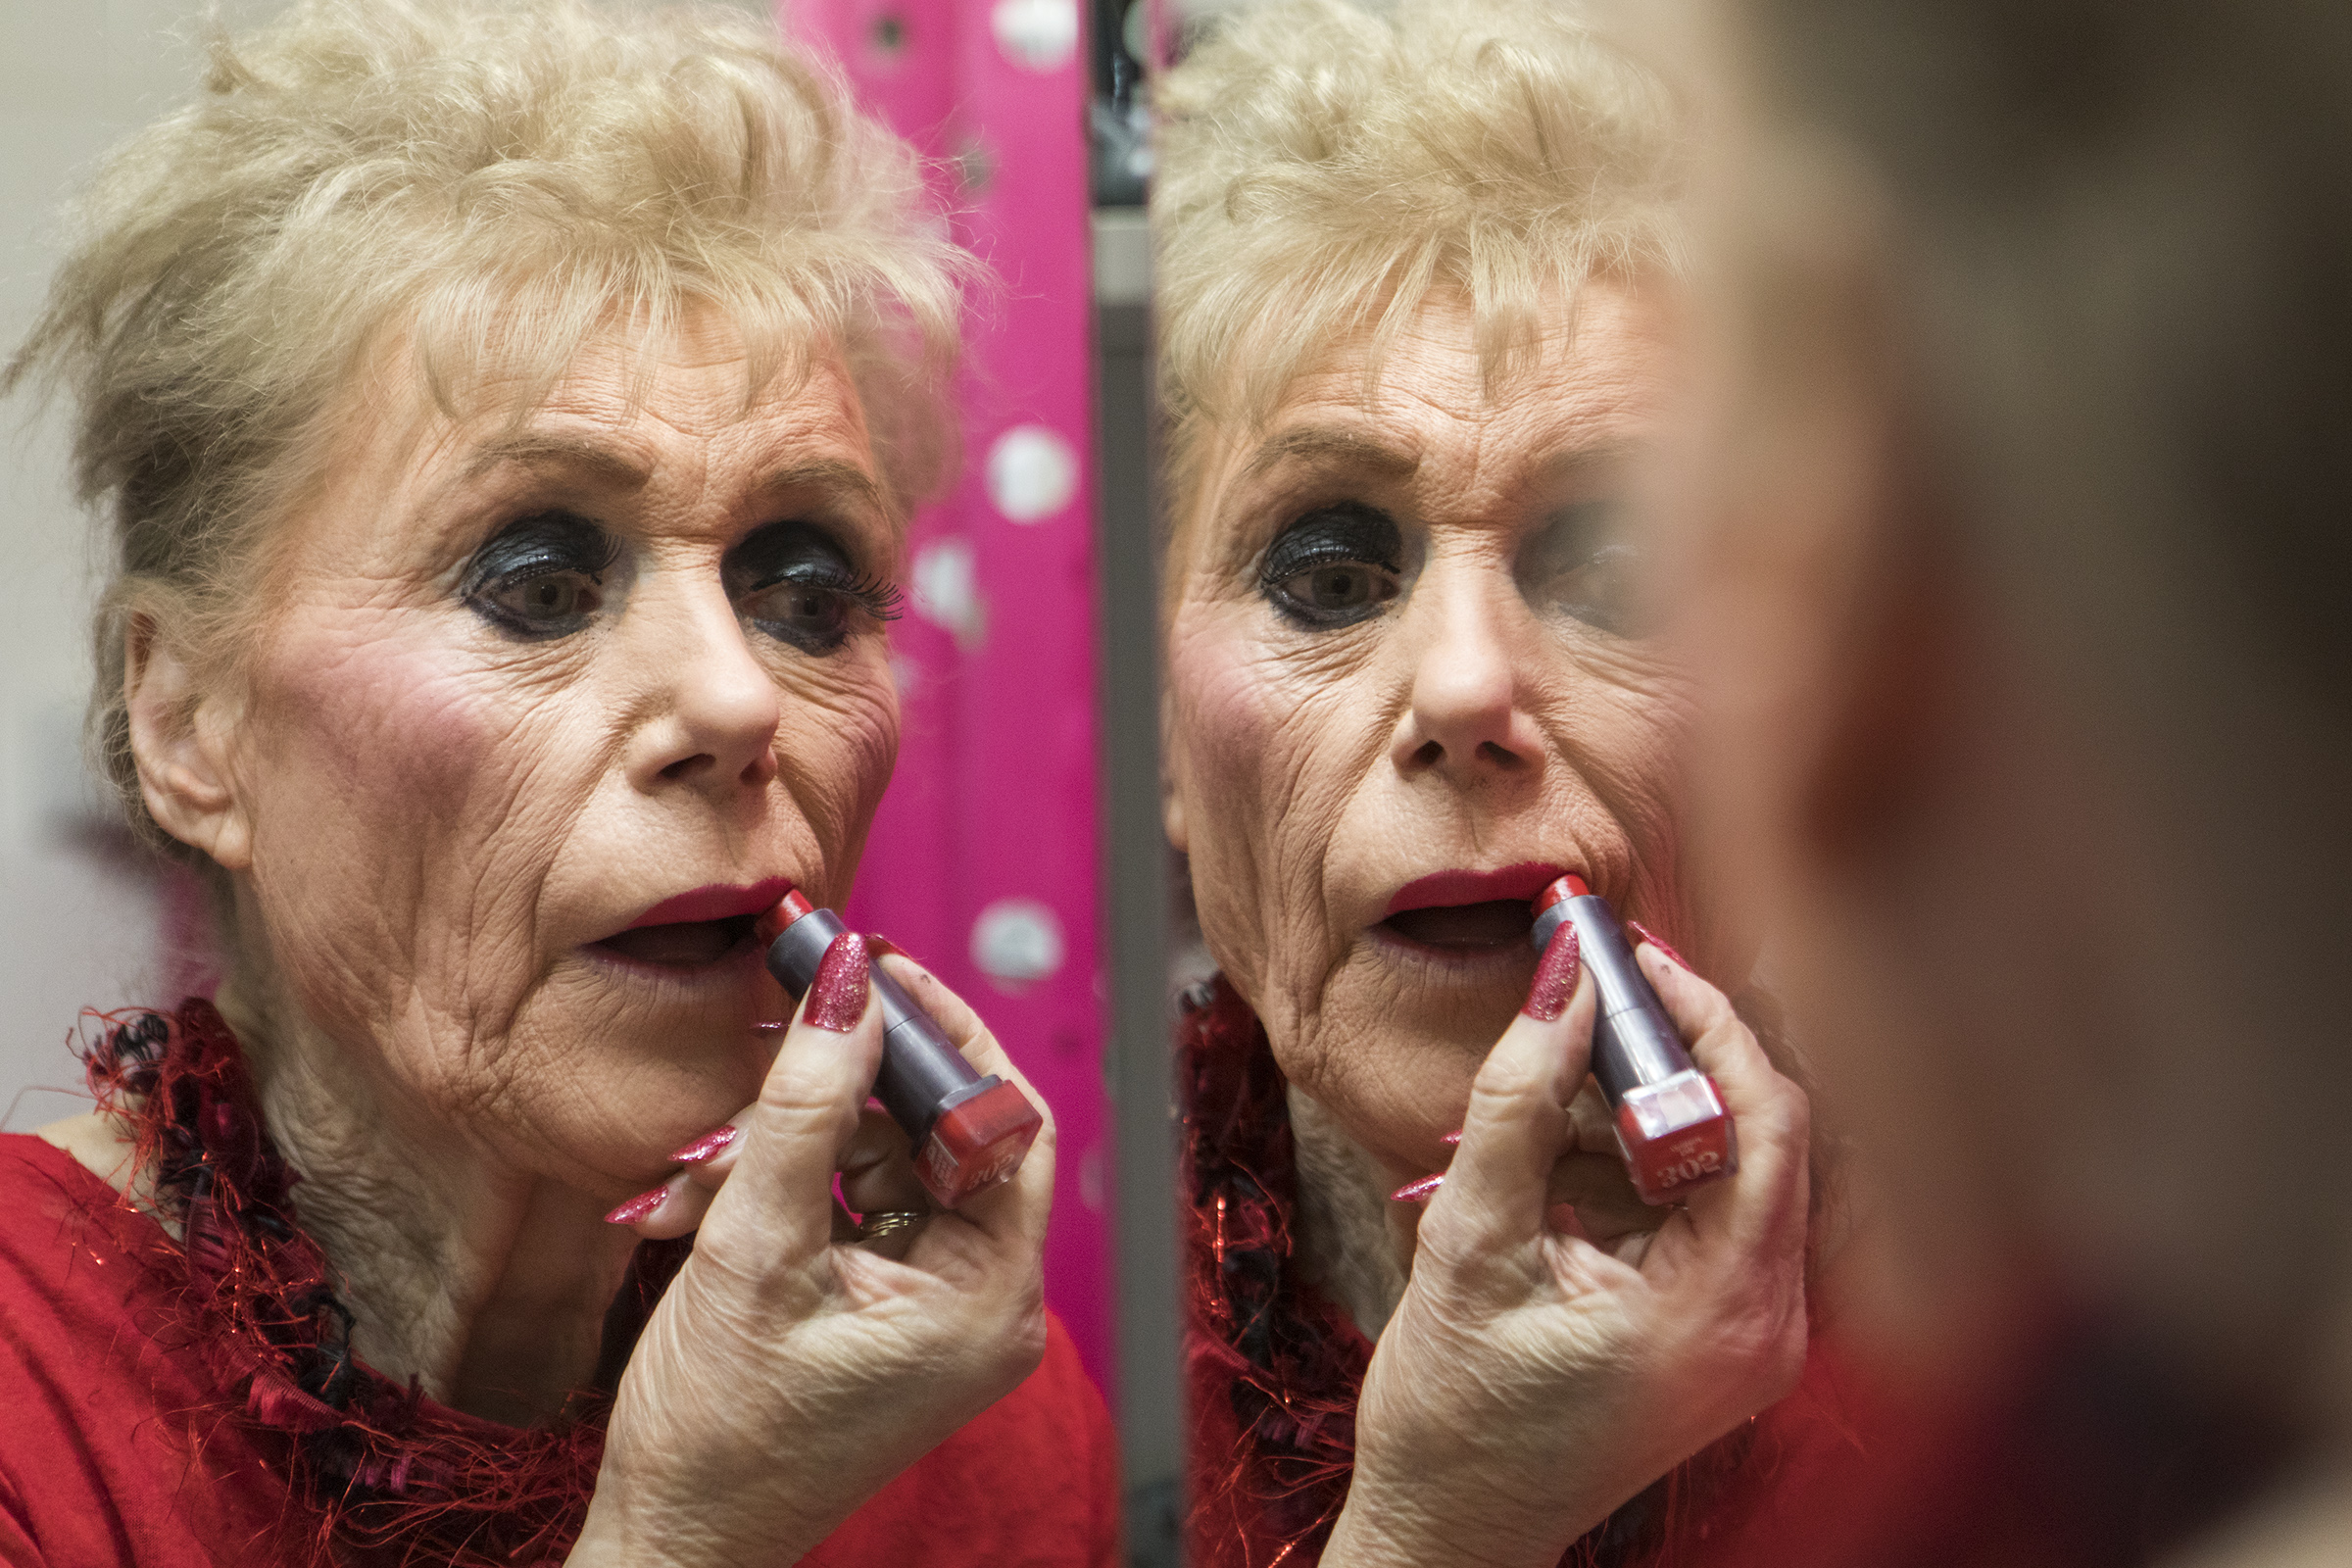 Fran Owens applies lipstick in the bathroom of her home in Stoneham on Dec. 7, 2018. Owens describes her makeup routine as transforming from a caterpillar to a butterfly.